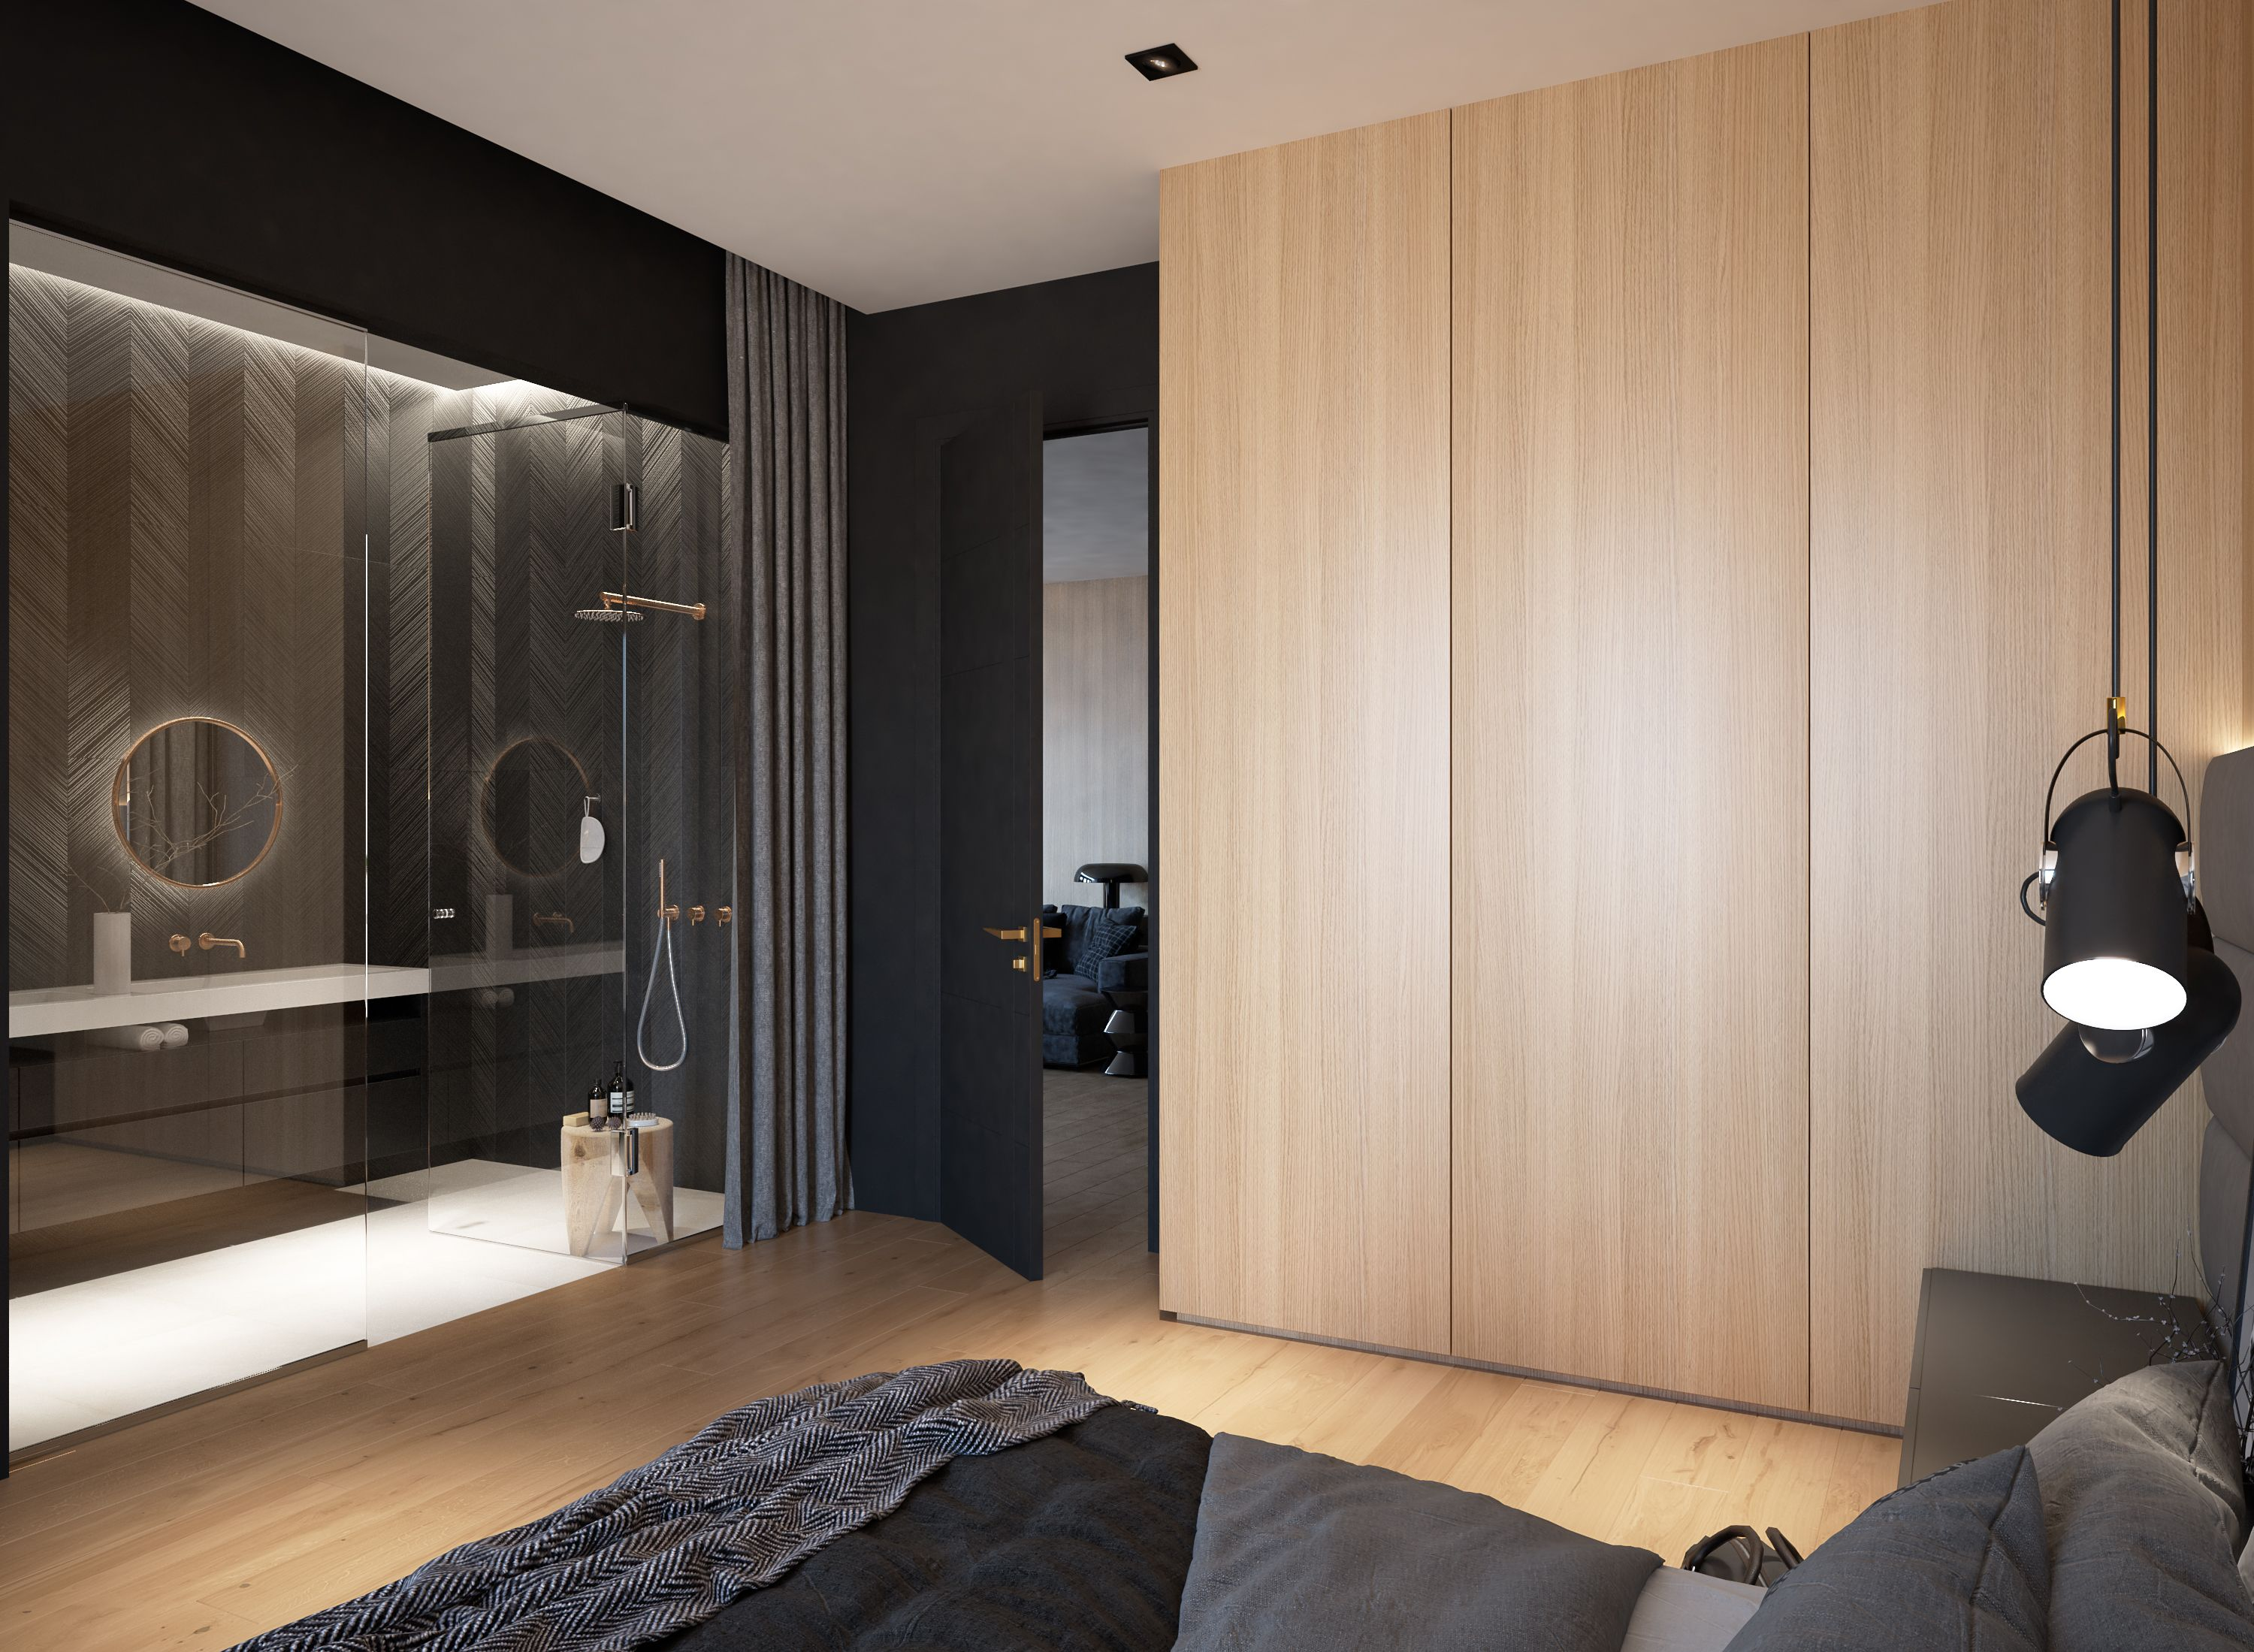 Apartment in Warschau | Apartment in Warschau | Pinterest | Immobilien